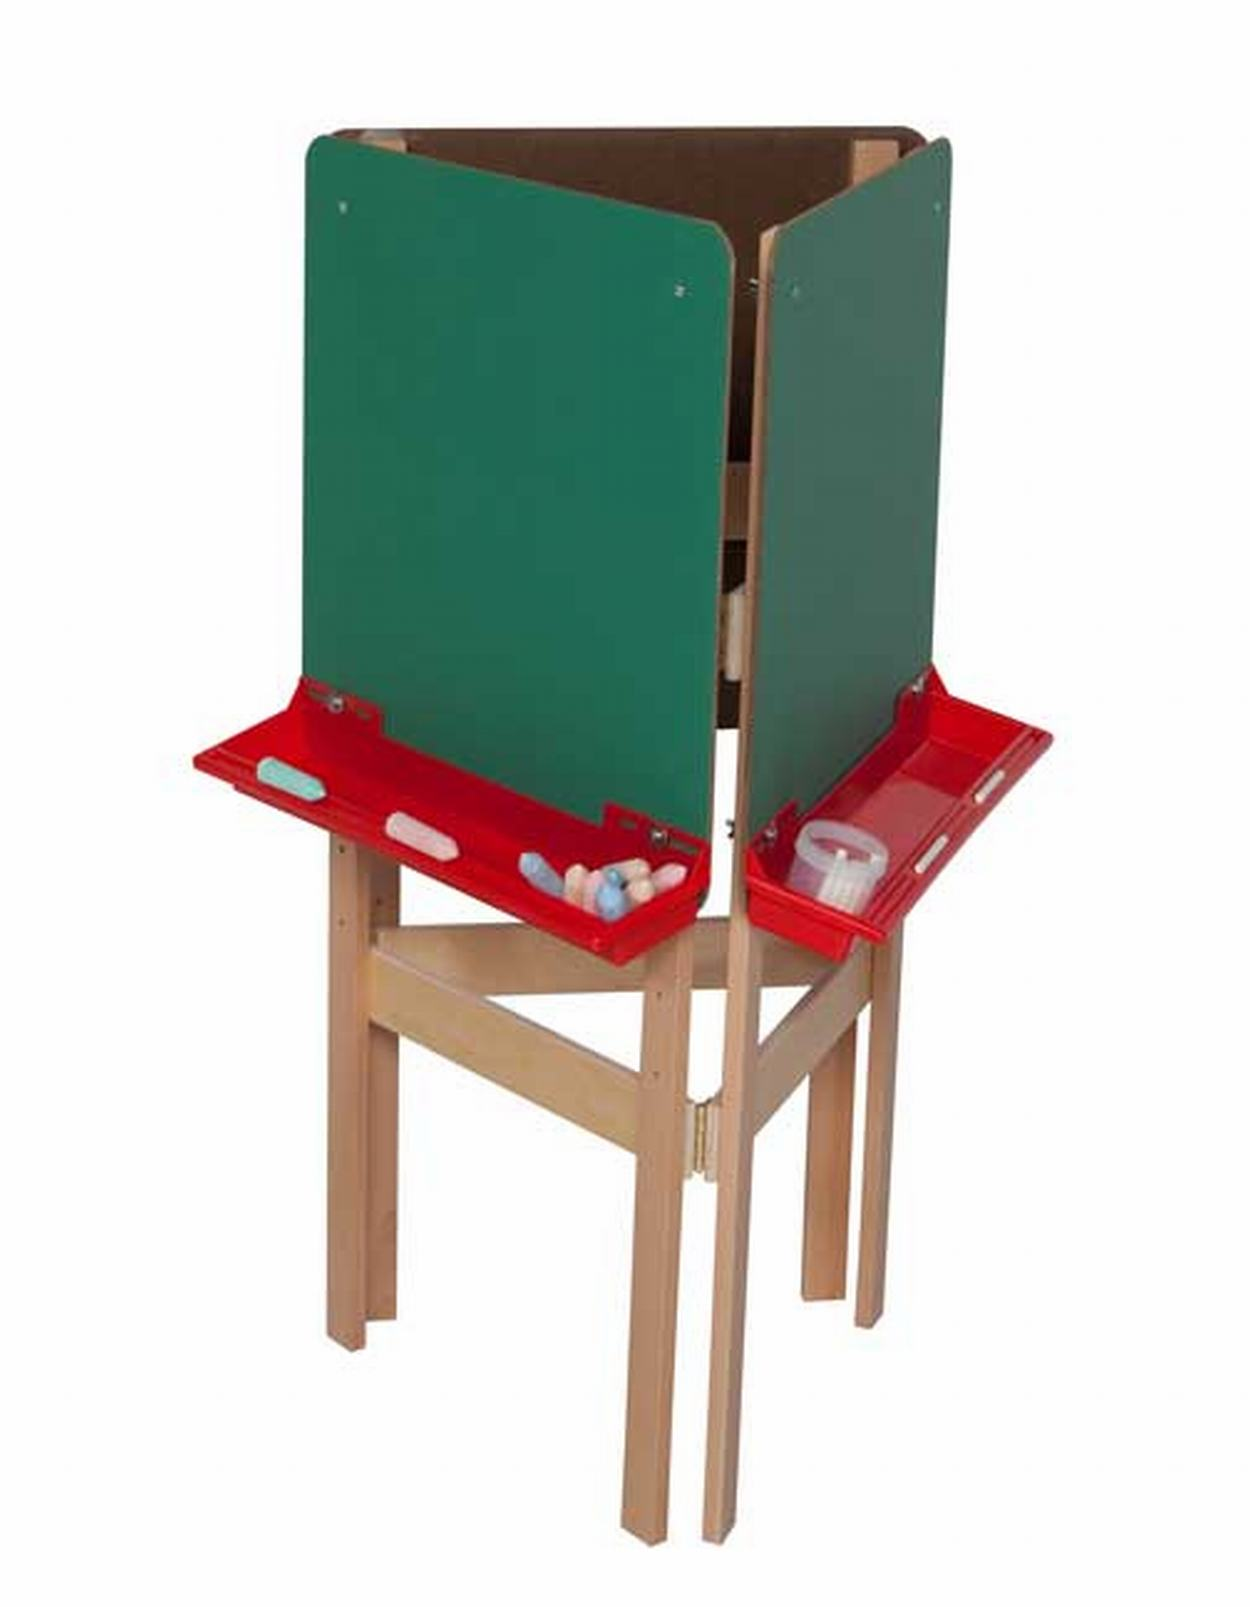 Three-Way Adjustable Easel with Chalkboard